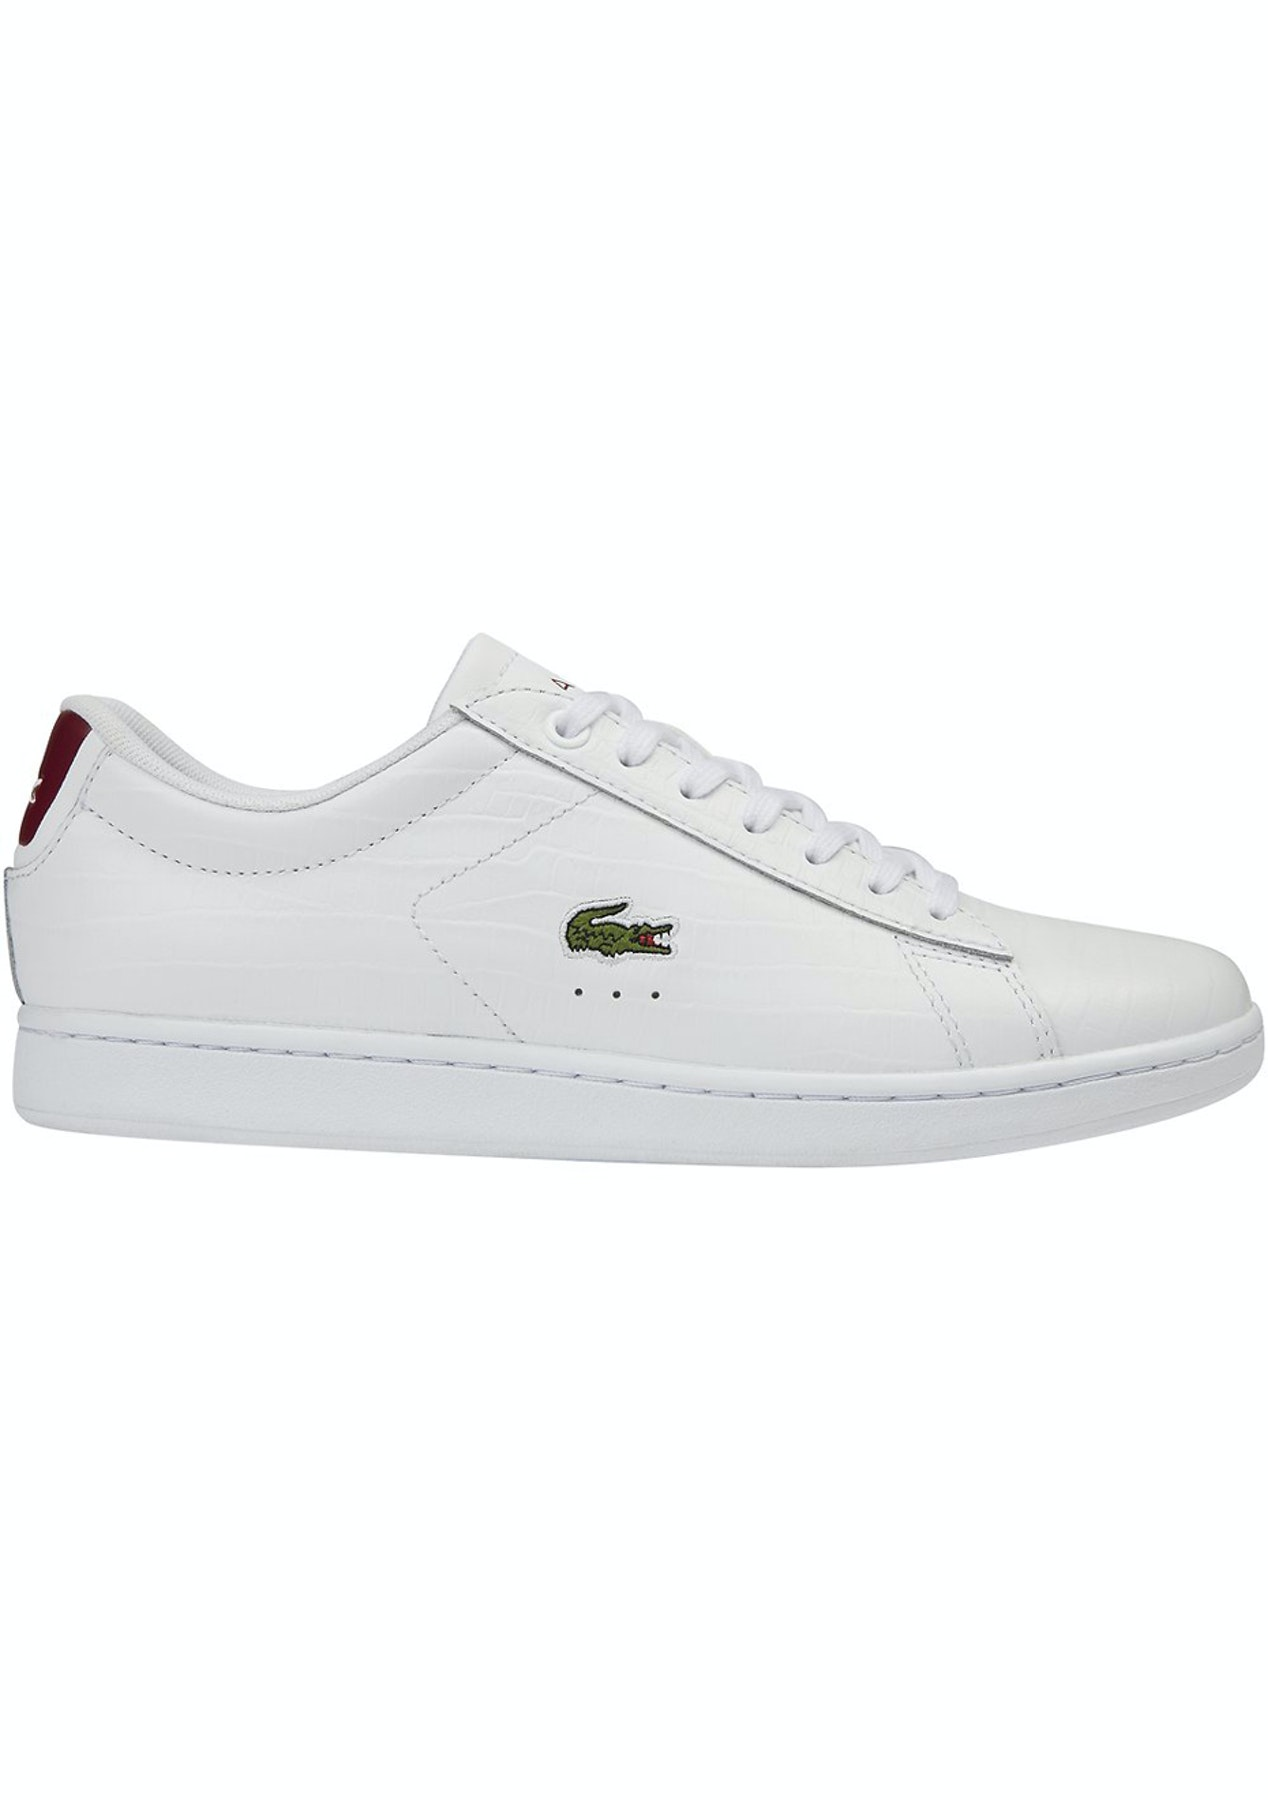 20e4d7d6a Womens Lacoste - Carnaby Evo G316 8 - White Red - Best Selling Shoes -  Onceit